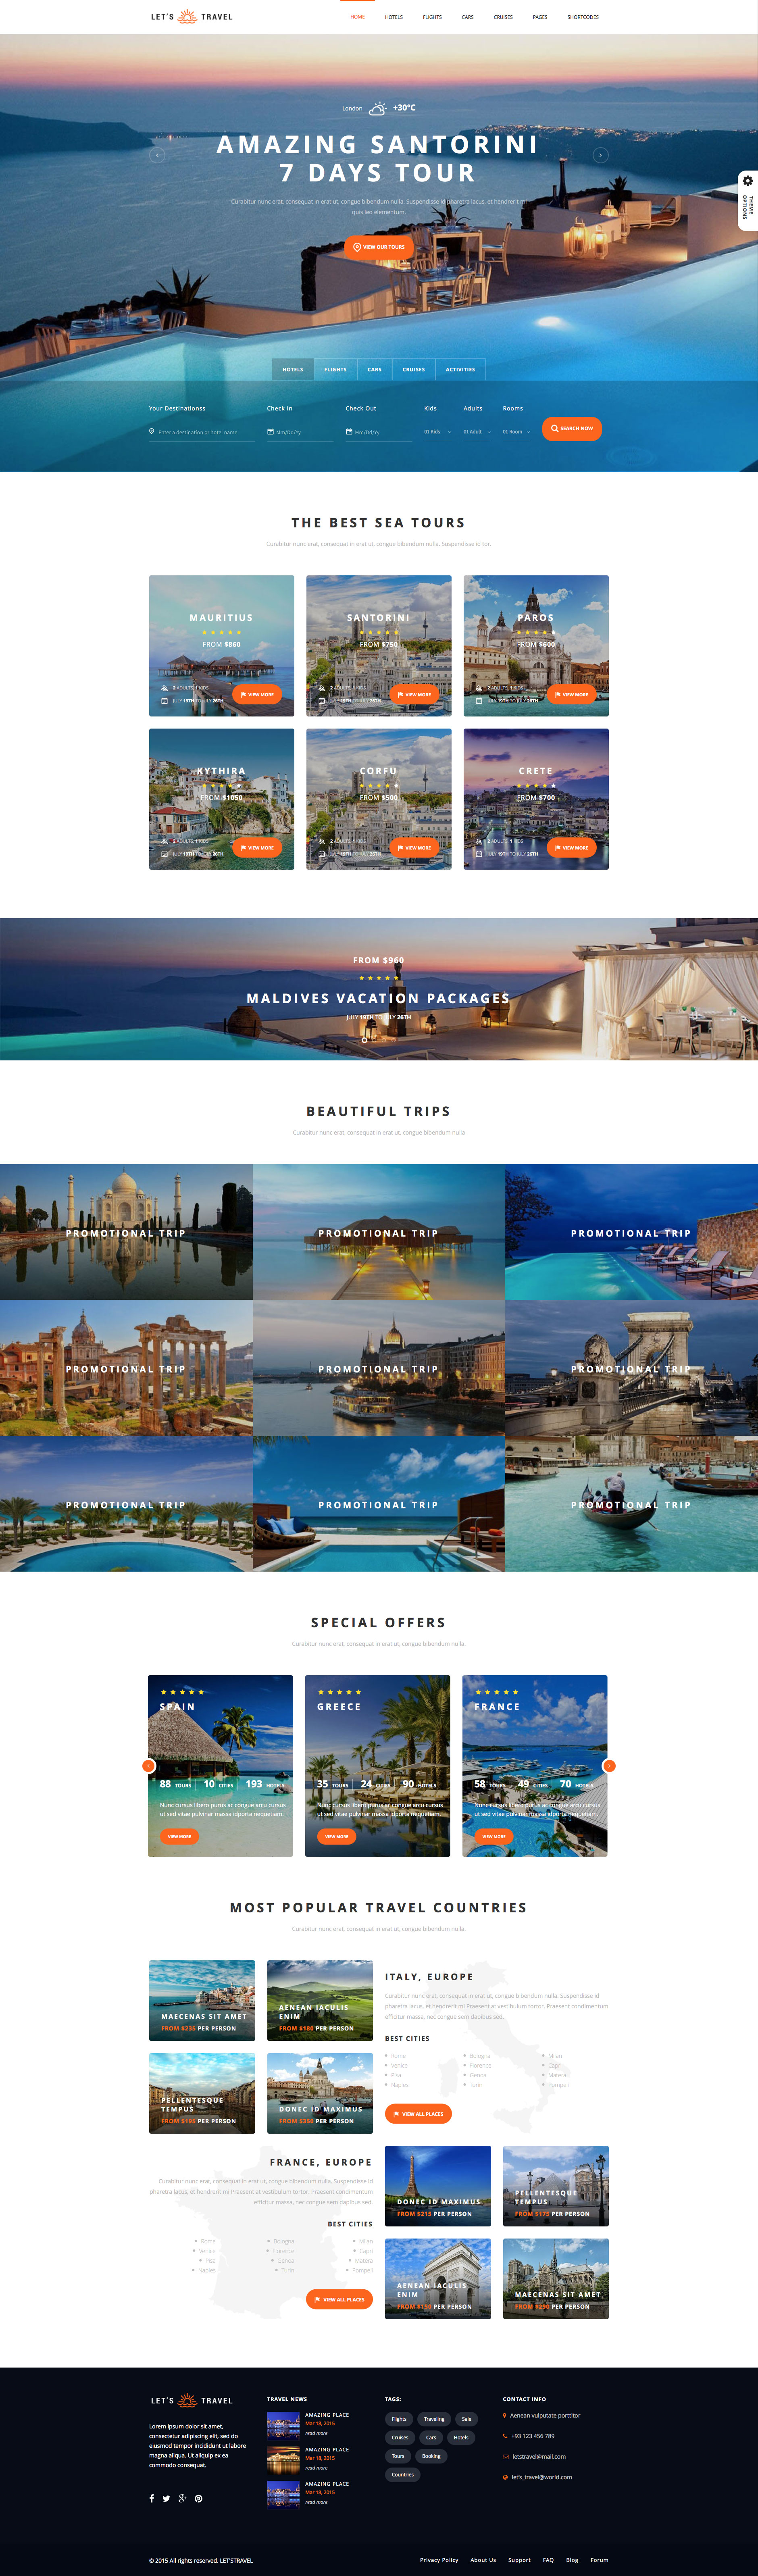 Let's travel is a fully responsive HTML5 travel booking website template, designed and optimized for travel agencies. This booking template comes with 17 Unique HomePages, more then 100 Pages, completely integrated booking system, availability checker, advanced filtering, front-end management, review system and many more. Let's travel template is built on the popular Bootstrap 3 framework.